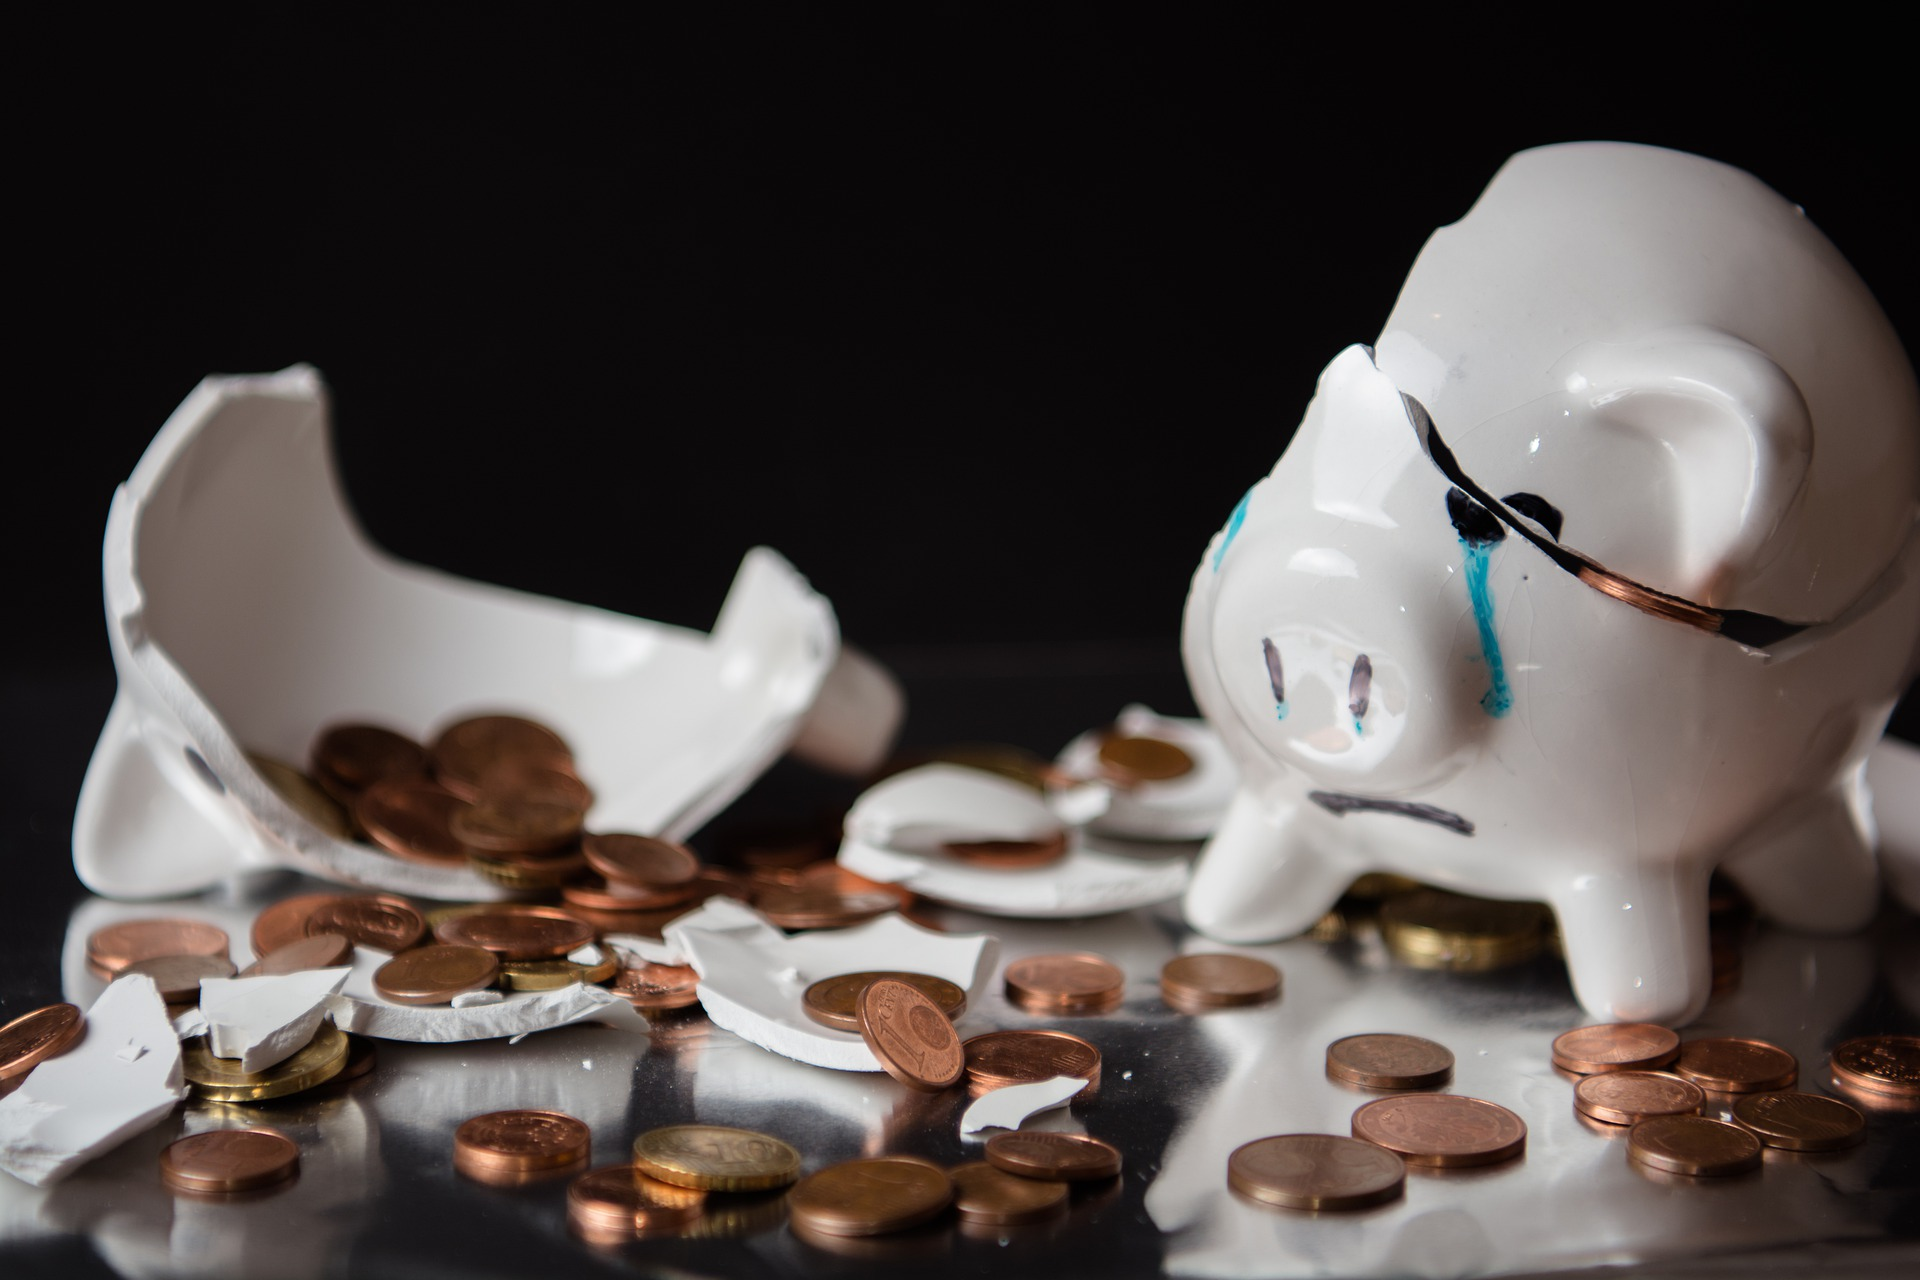 Broken piggy banks with coins spilling out